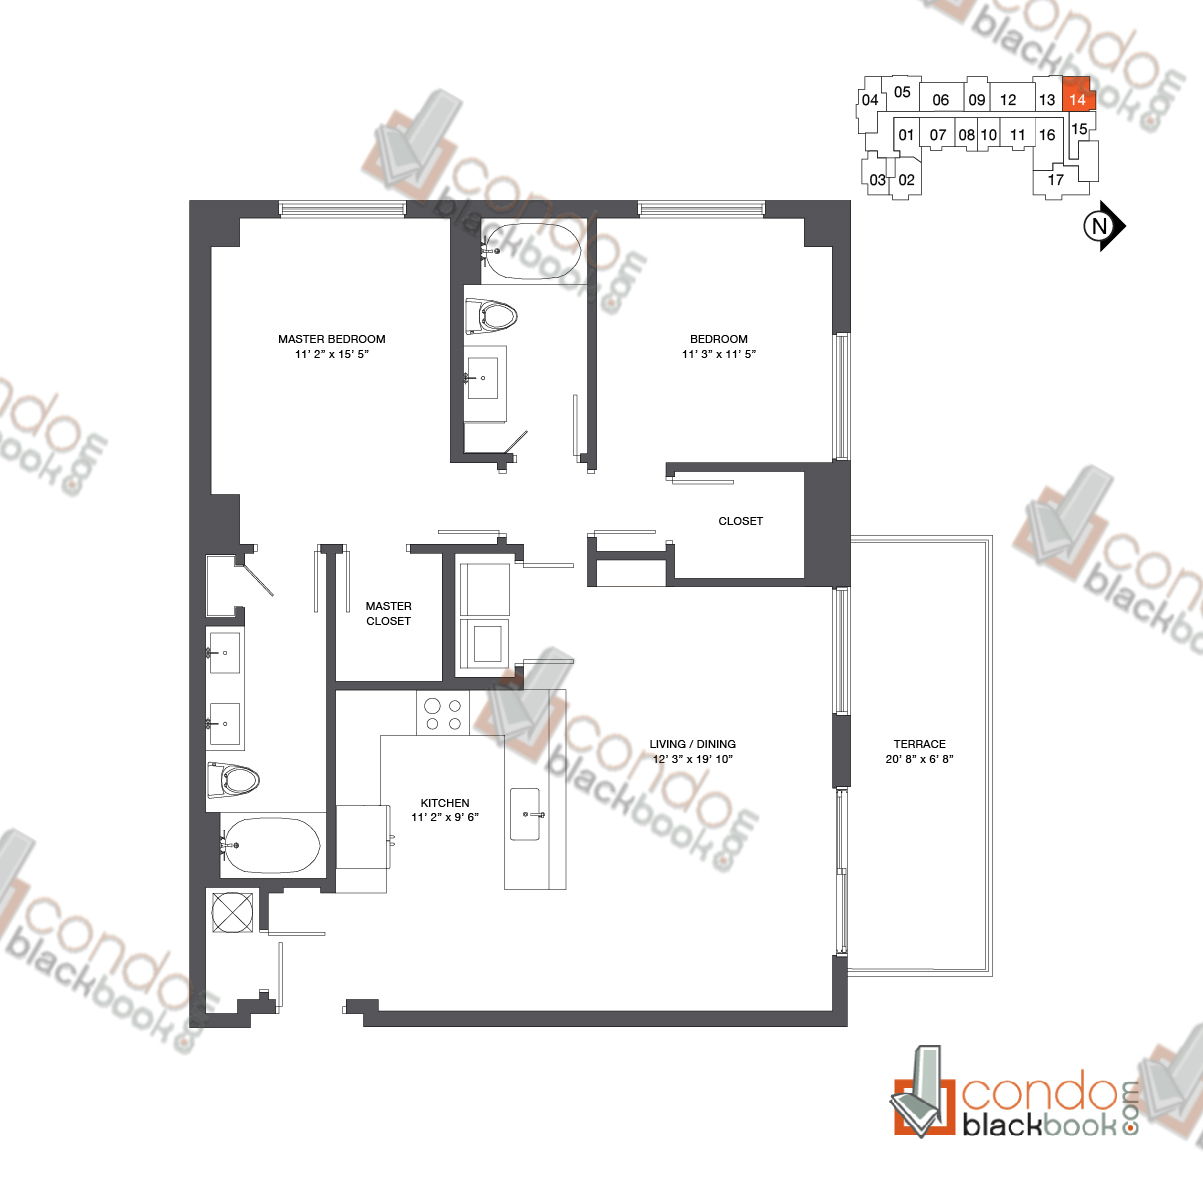 Floor plan for Nine at Mary Brickell Village Brickell Miami, model Residence 12-33_14, line 14, 2/2 bedrooms, 1,173 sq ft